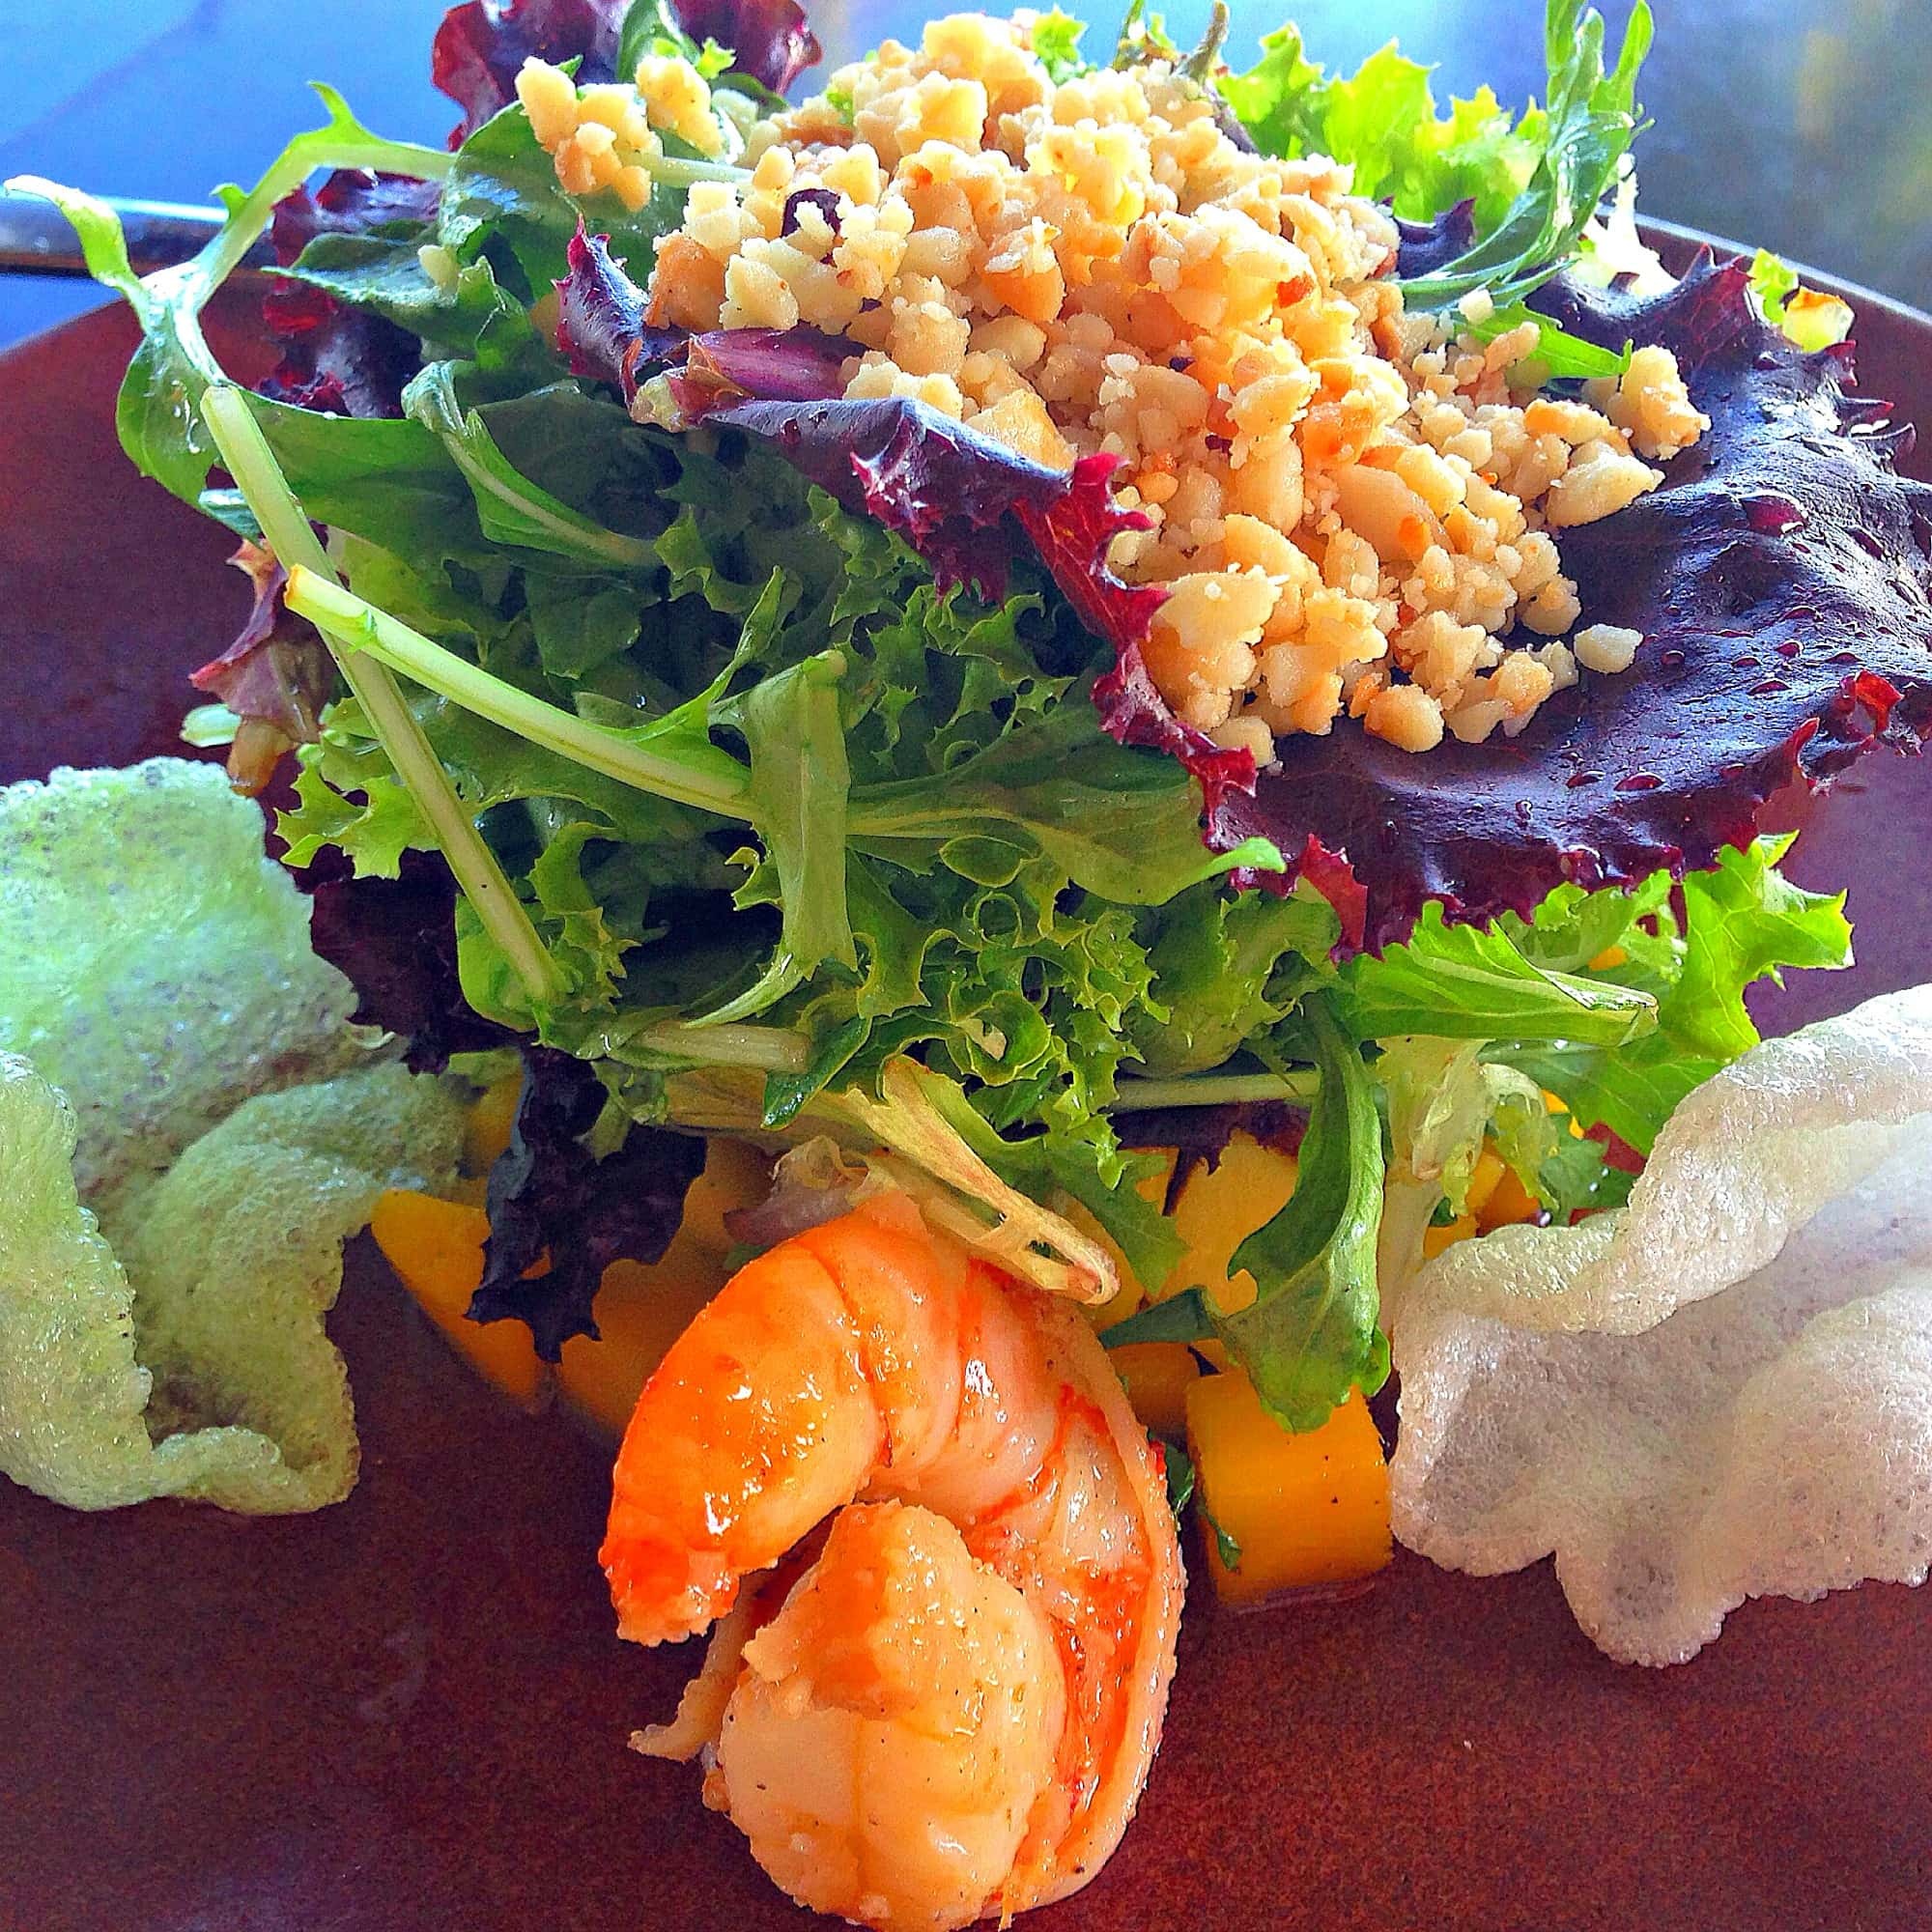 Japango's pretty Prawn and Mango Salad at Hyatt Regency Maui with kids